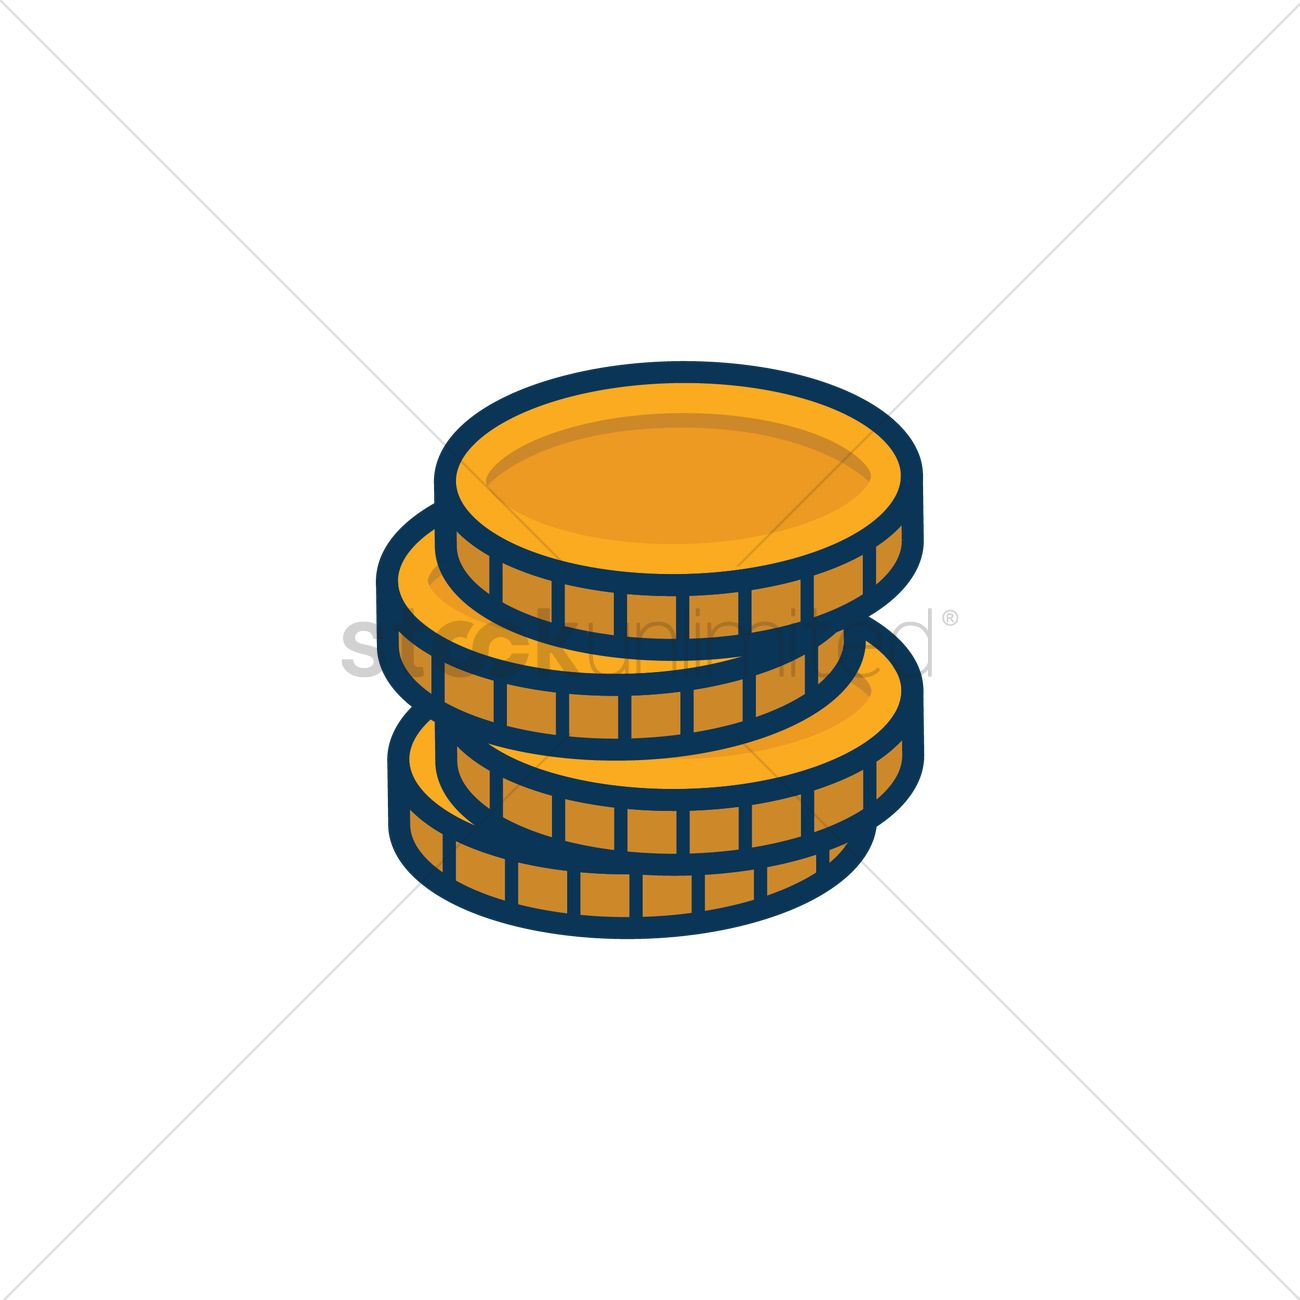 Stack of coins Vector Image - 1872706 | StockUnlimited